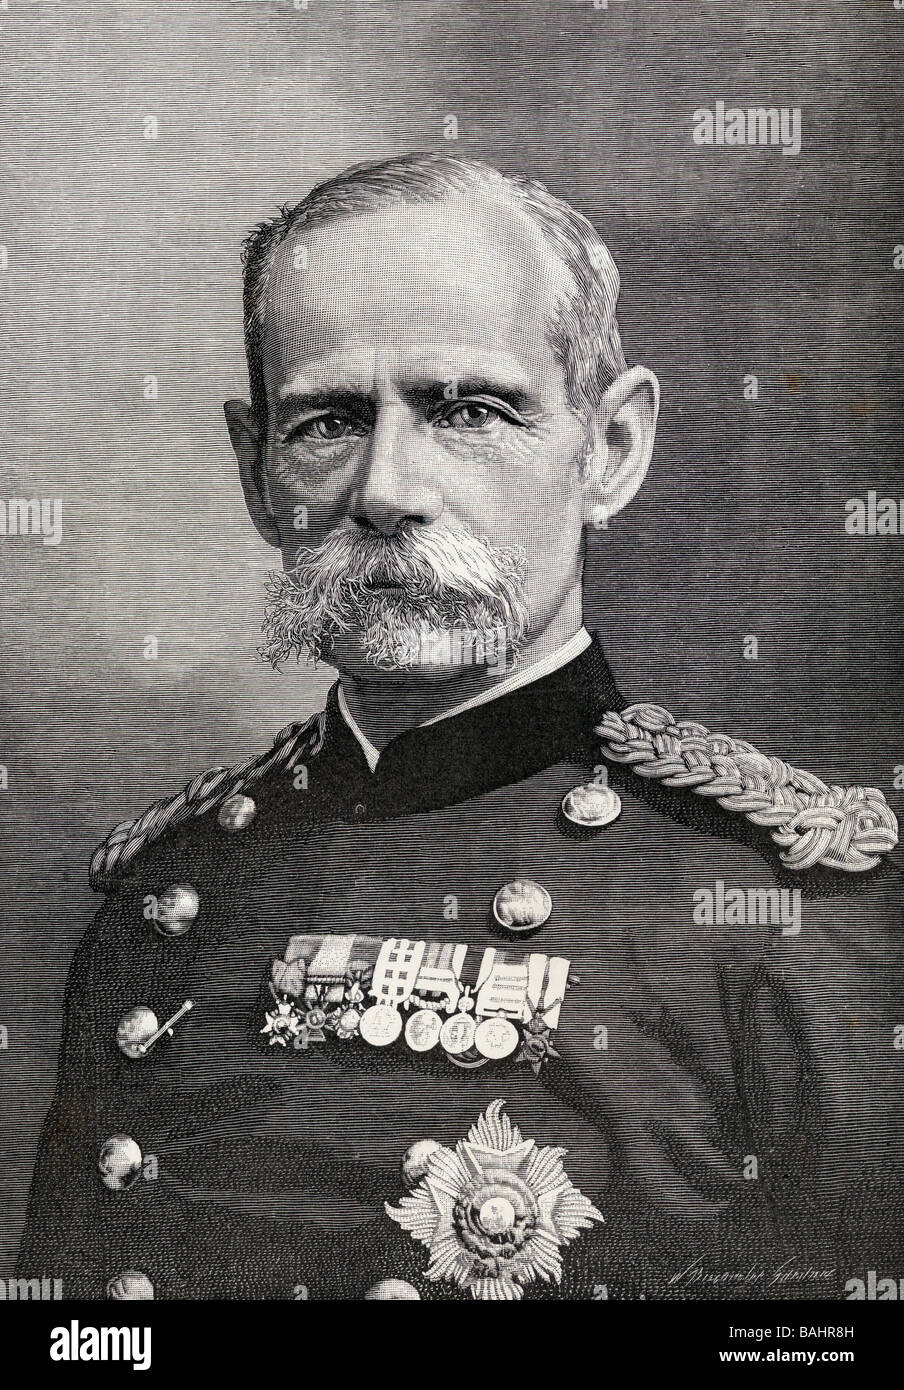 Field Marshal Frederick Sleigh Roberts 1st Earl Roberts 1832 1914 Anglo Irish soldier and commander - Stock Image